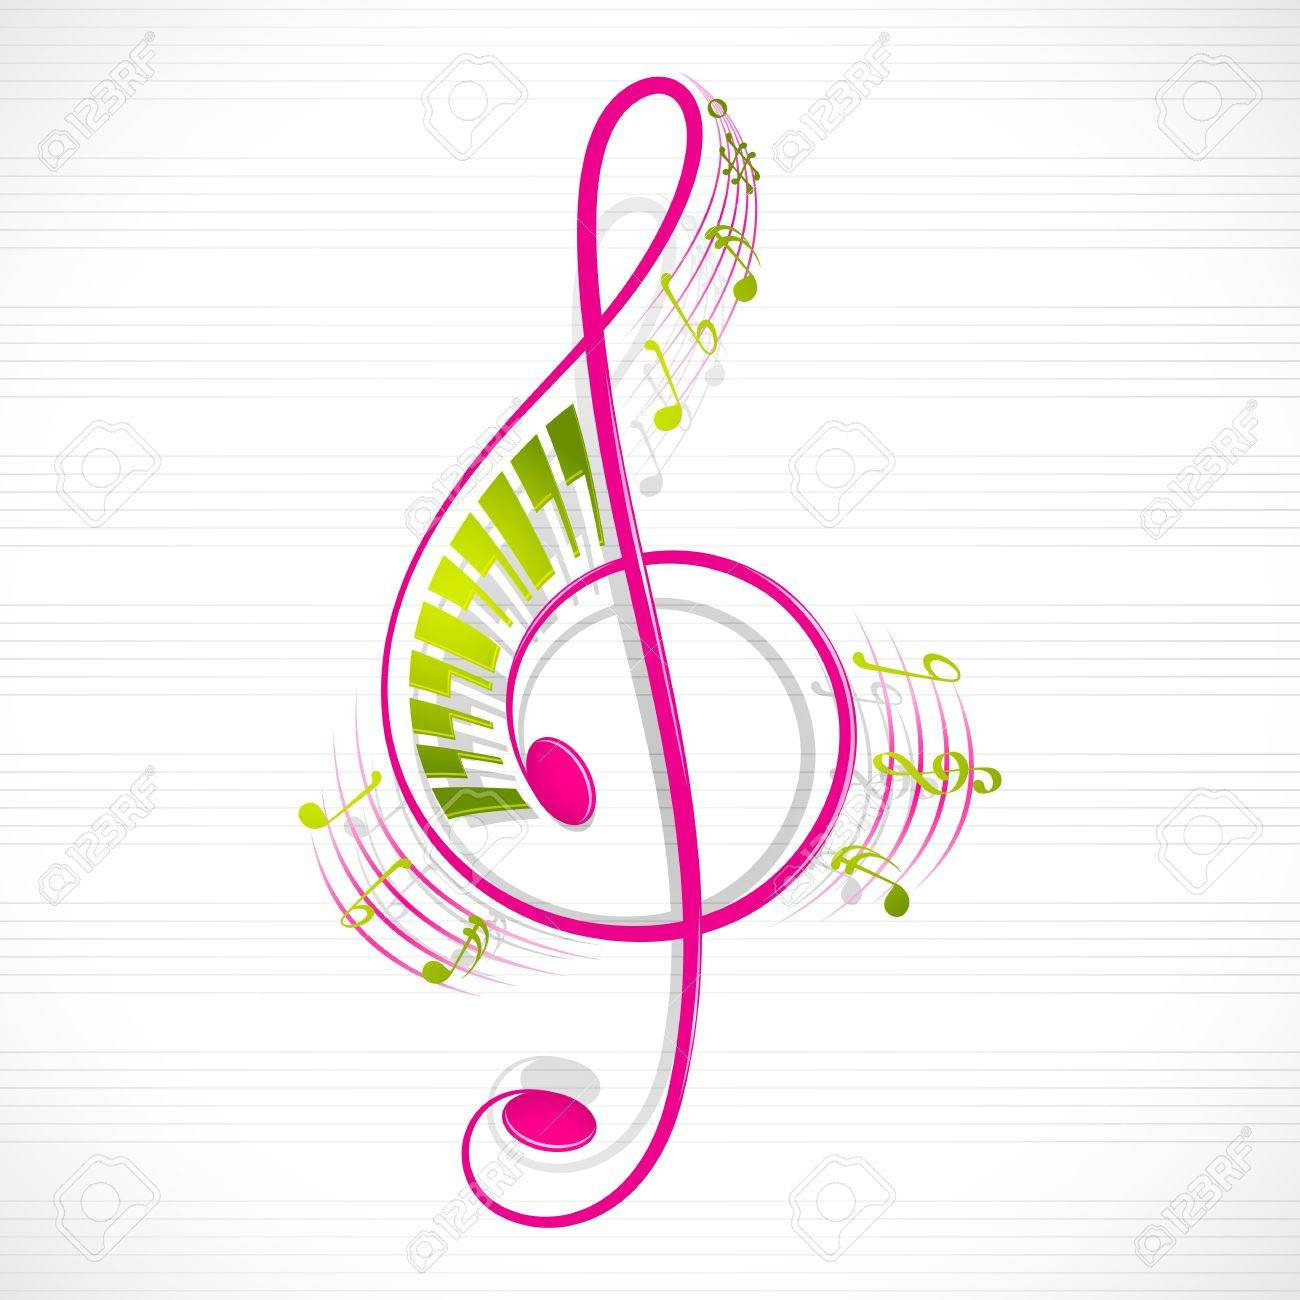 Musical notes staff background on white vector by tassel78 image - Treble Clef Vector Illustration Of Colorful Floral Musical Note